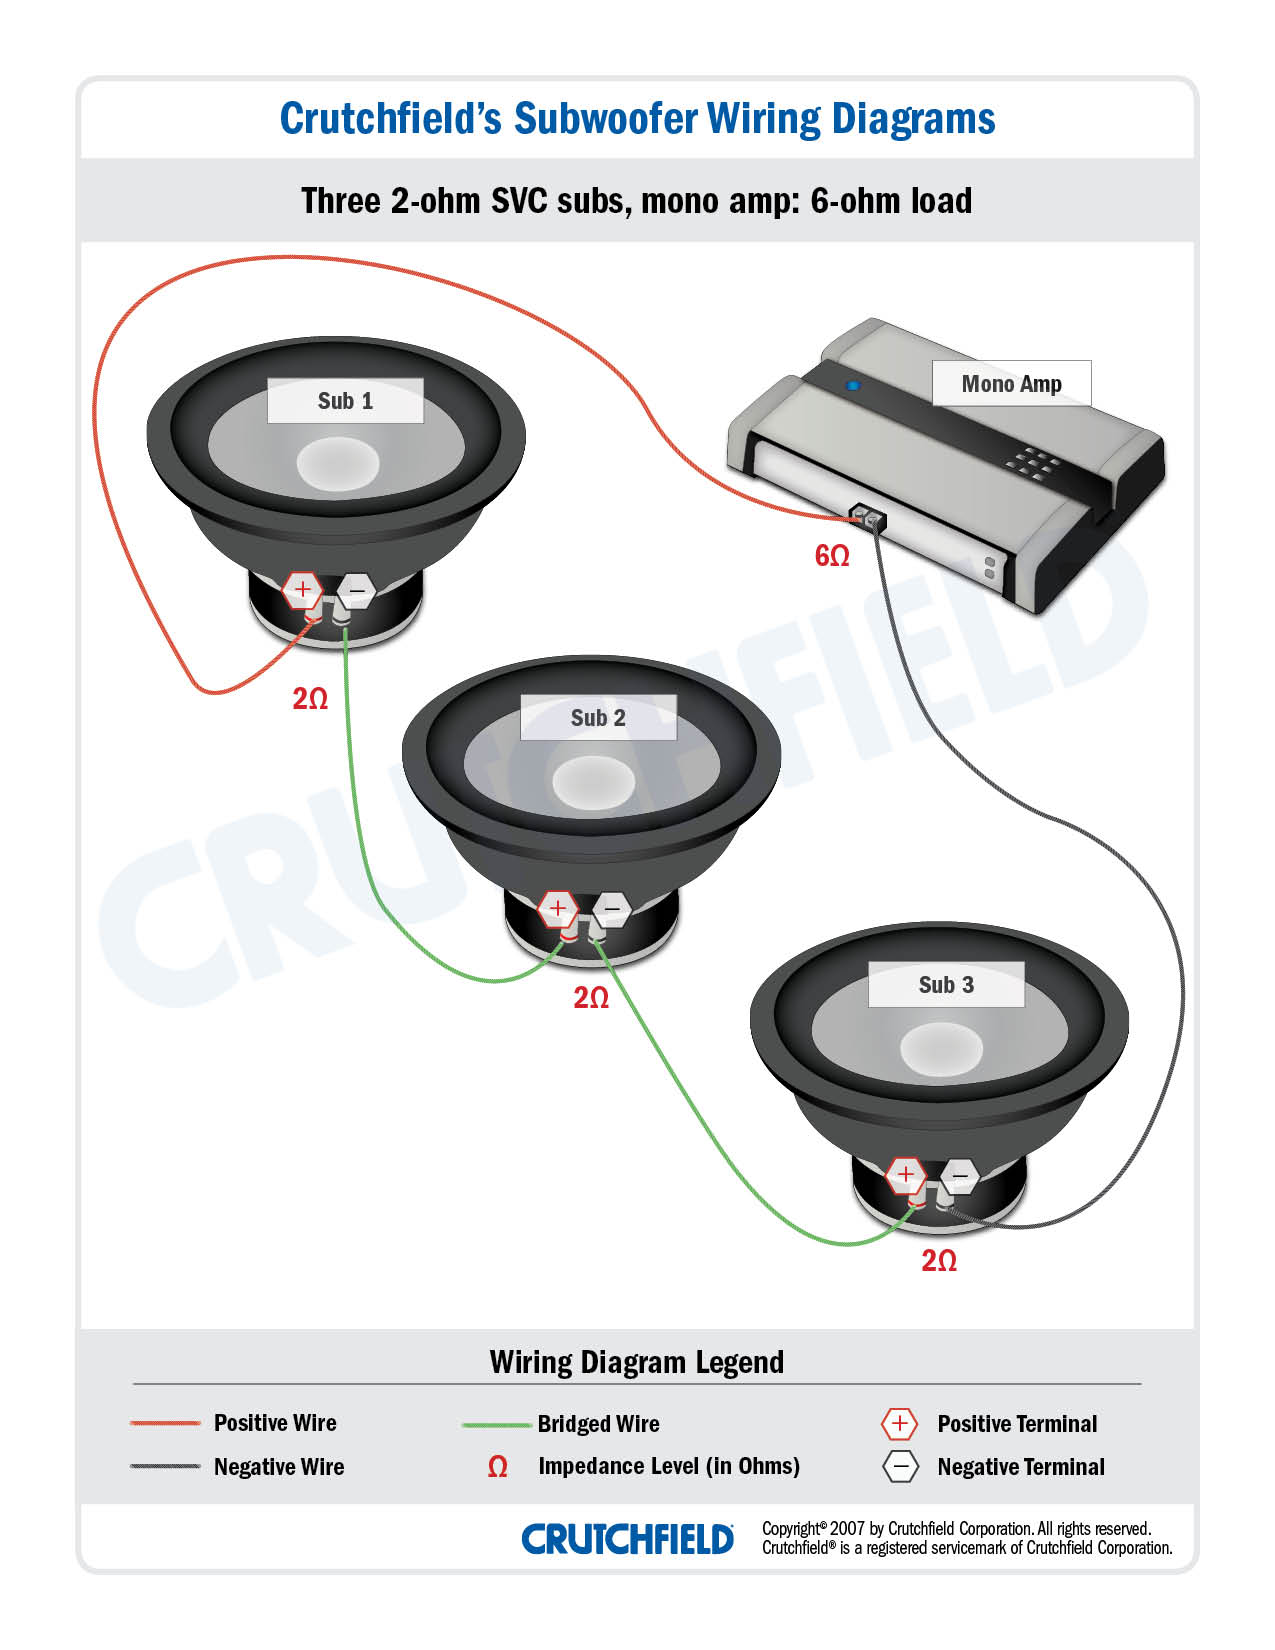 hight resolution of subwoofer wiring diagrams how to wire your subs crutchfield subwoofer 4 ohm mono amp wiring diagrams mono amp wiring diagram